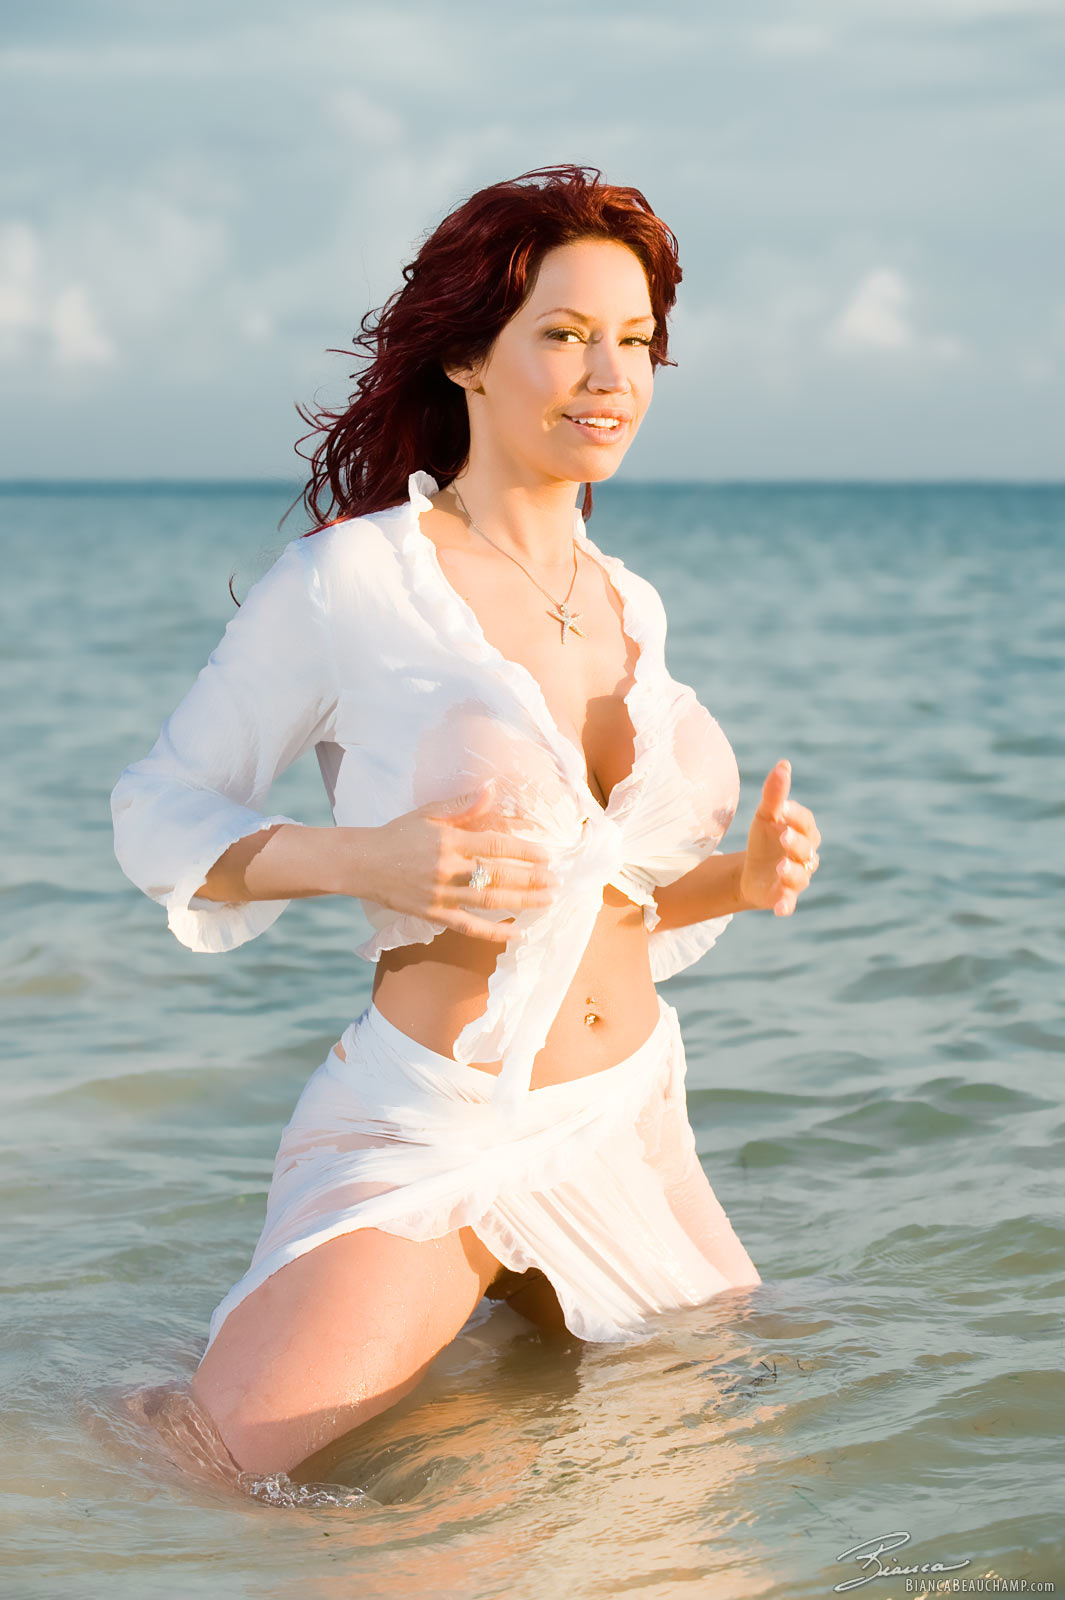 Things, Bianca beauchamp wet and naked are